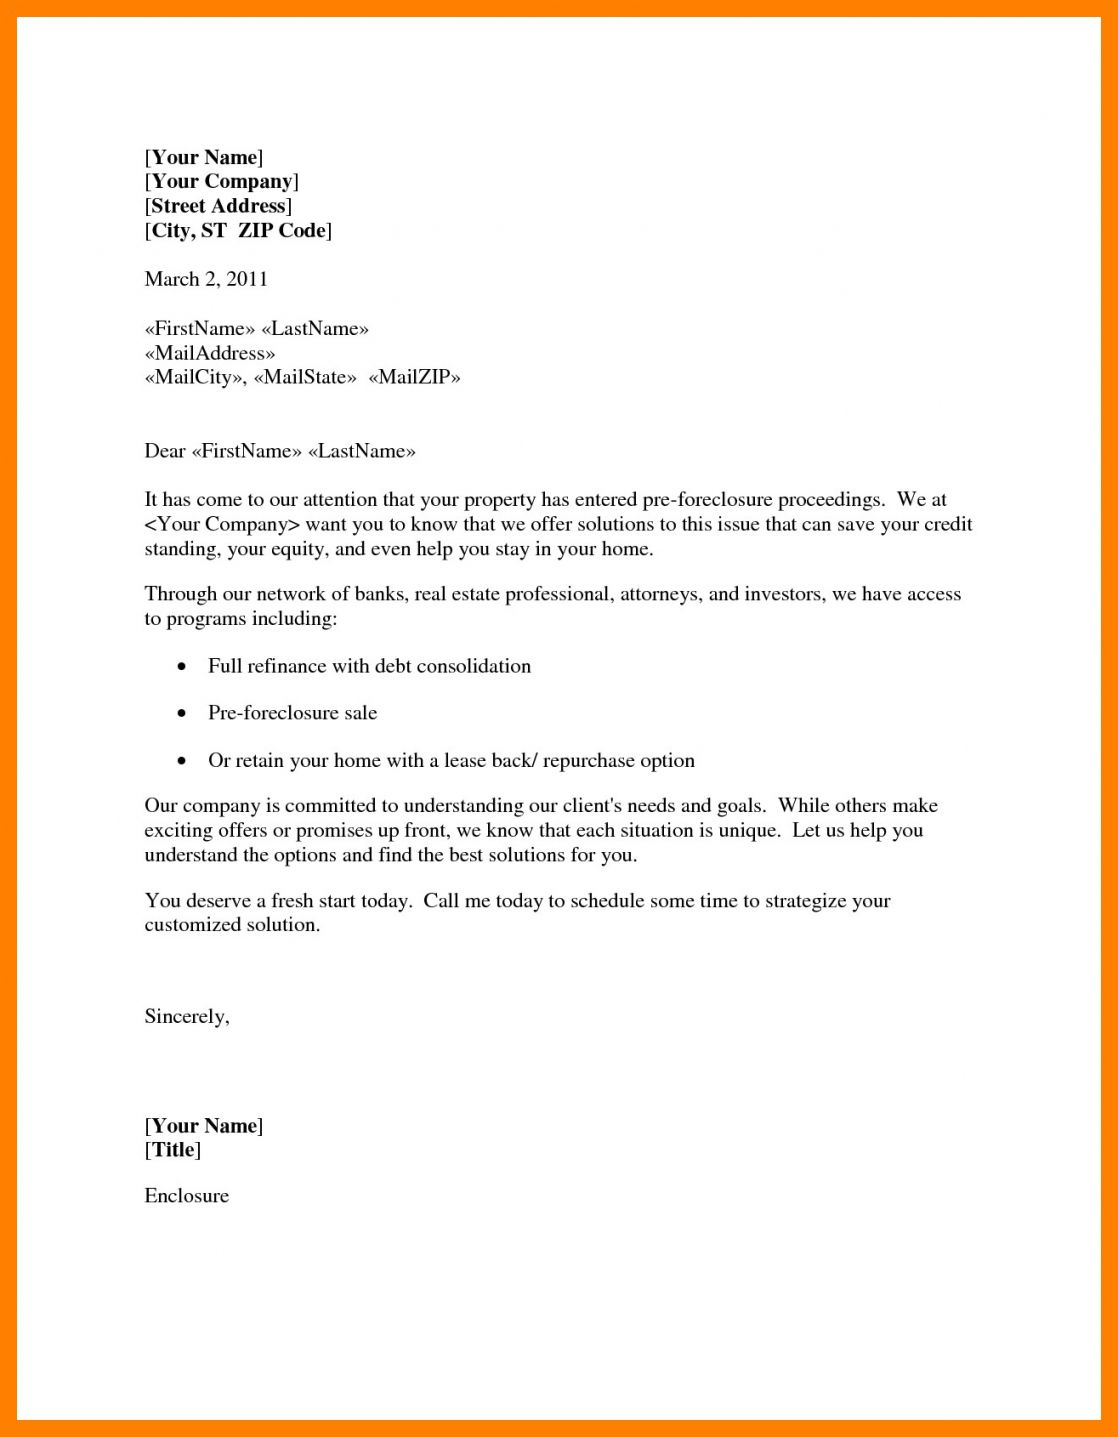 Get Our Image Of Foreclosure Letter Template In 2020 Letter